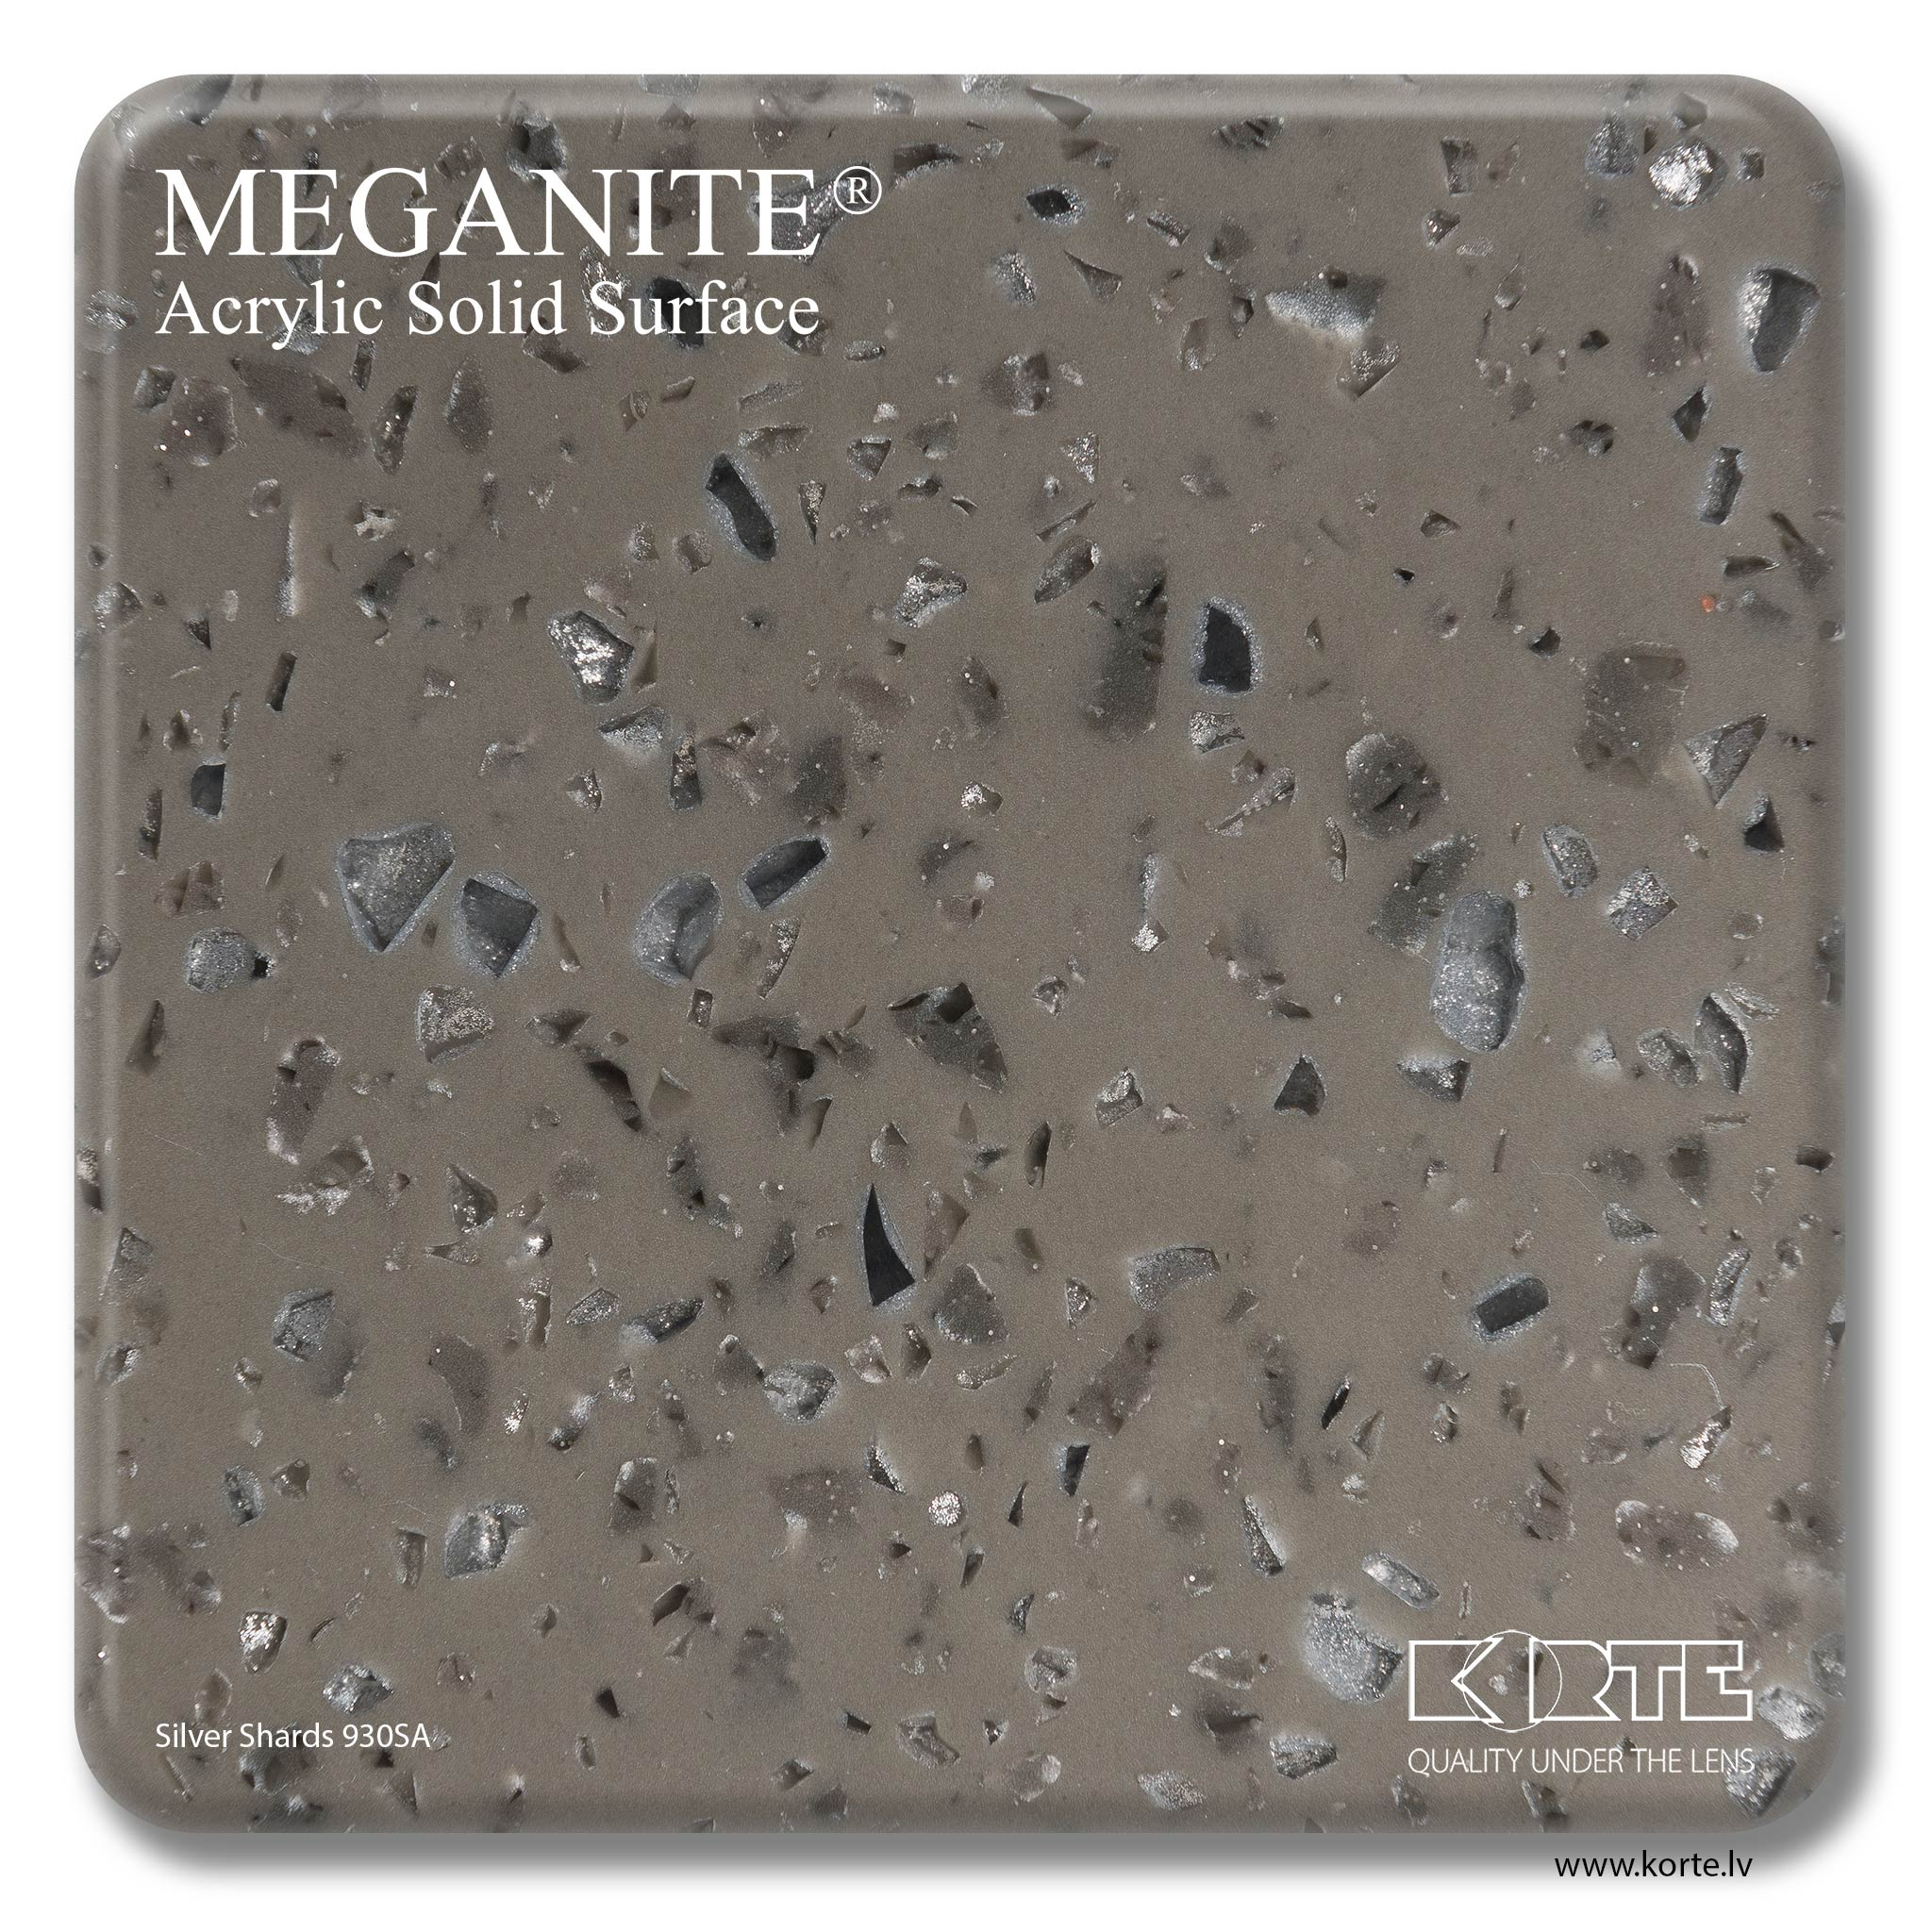 Meganite Silver Shards 930SA